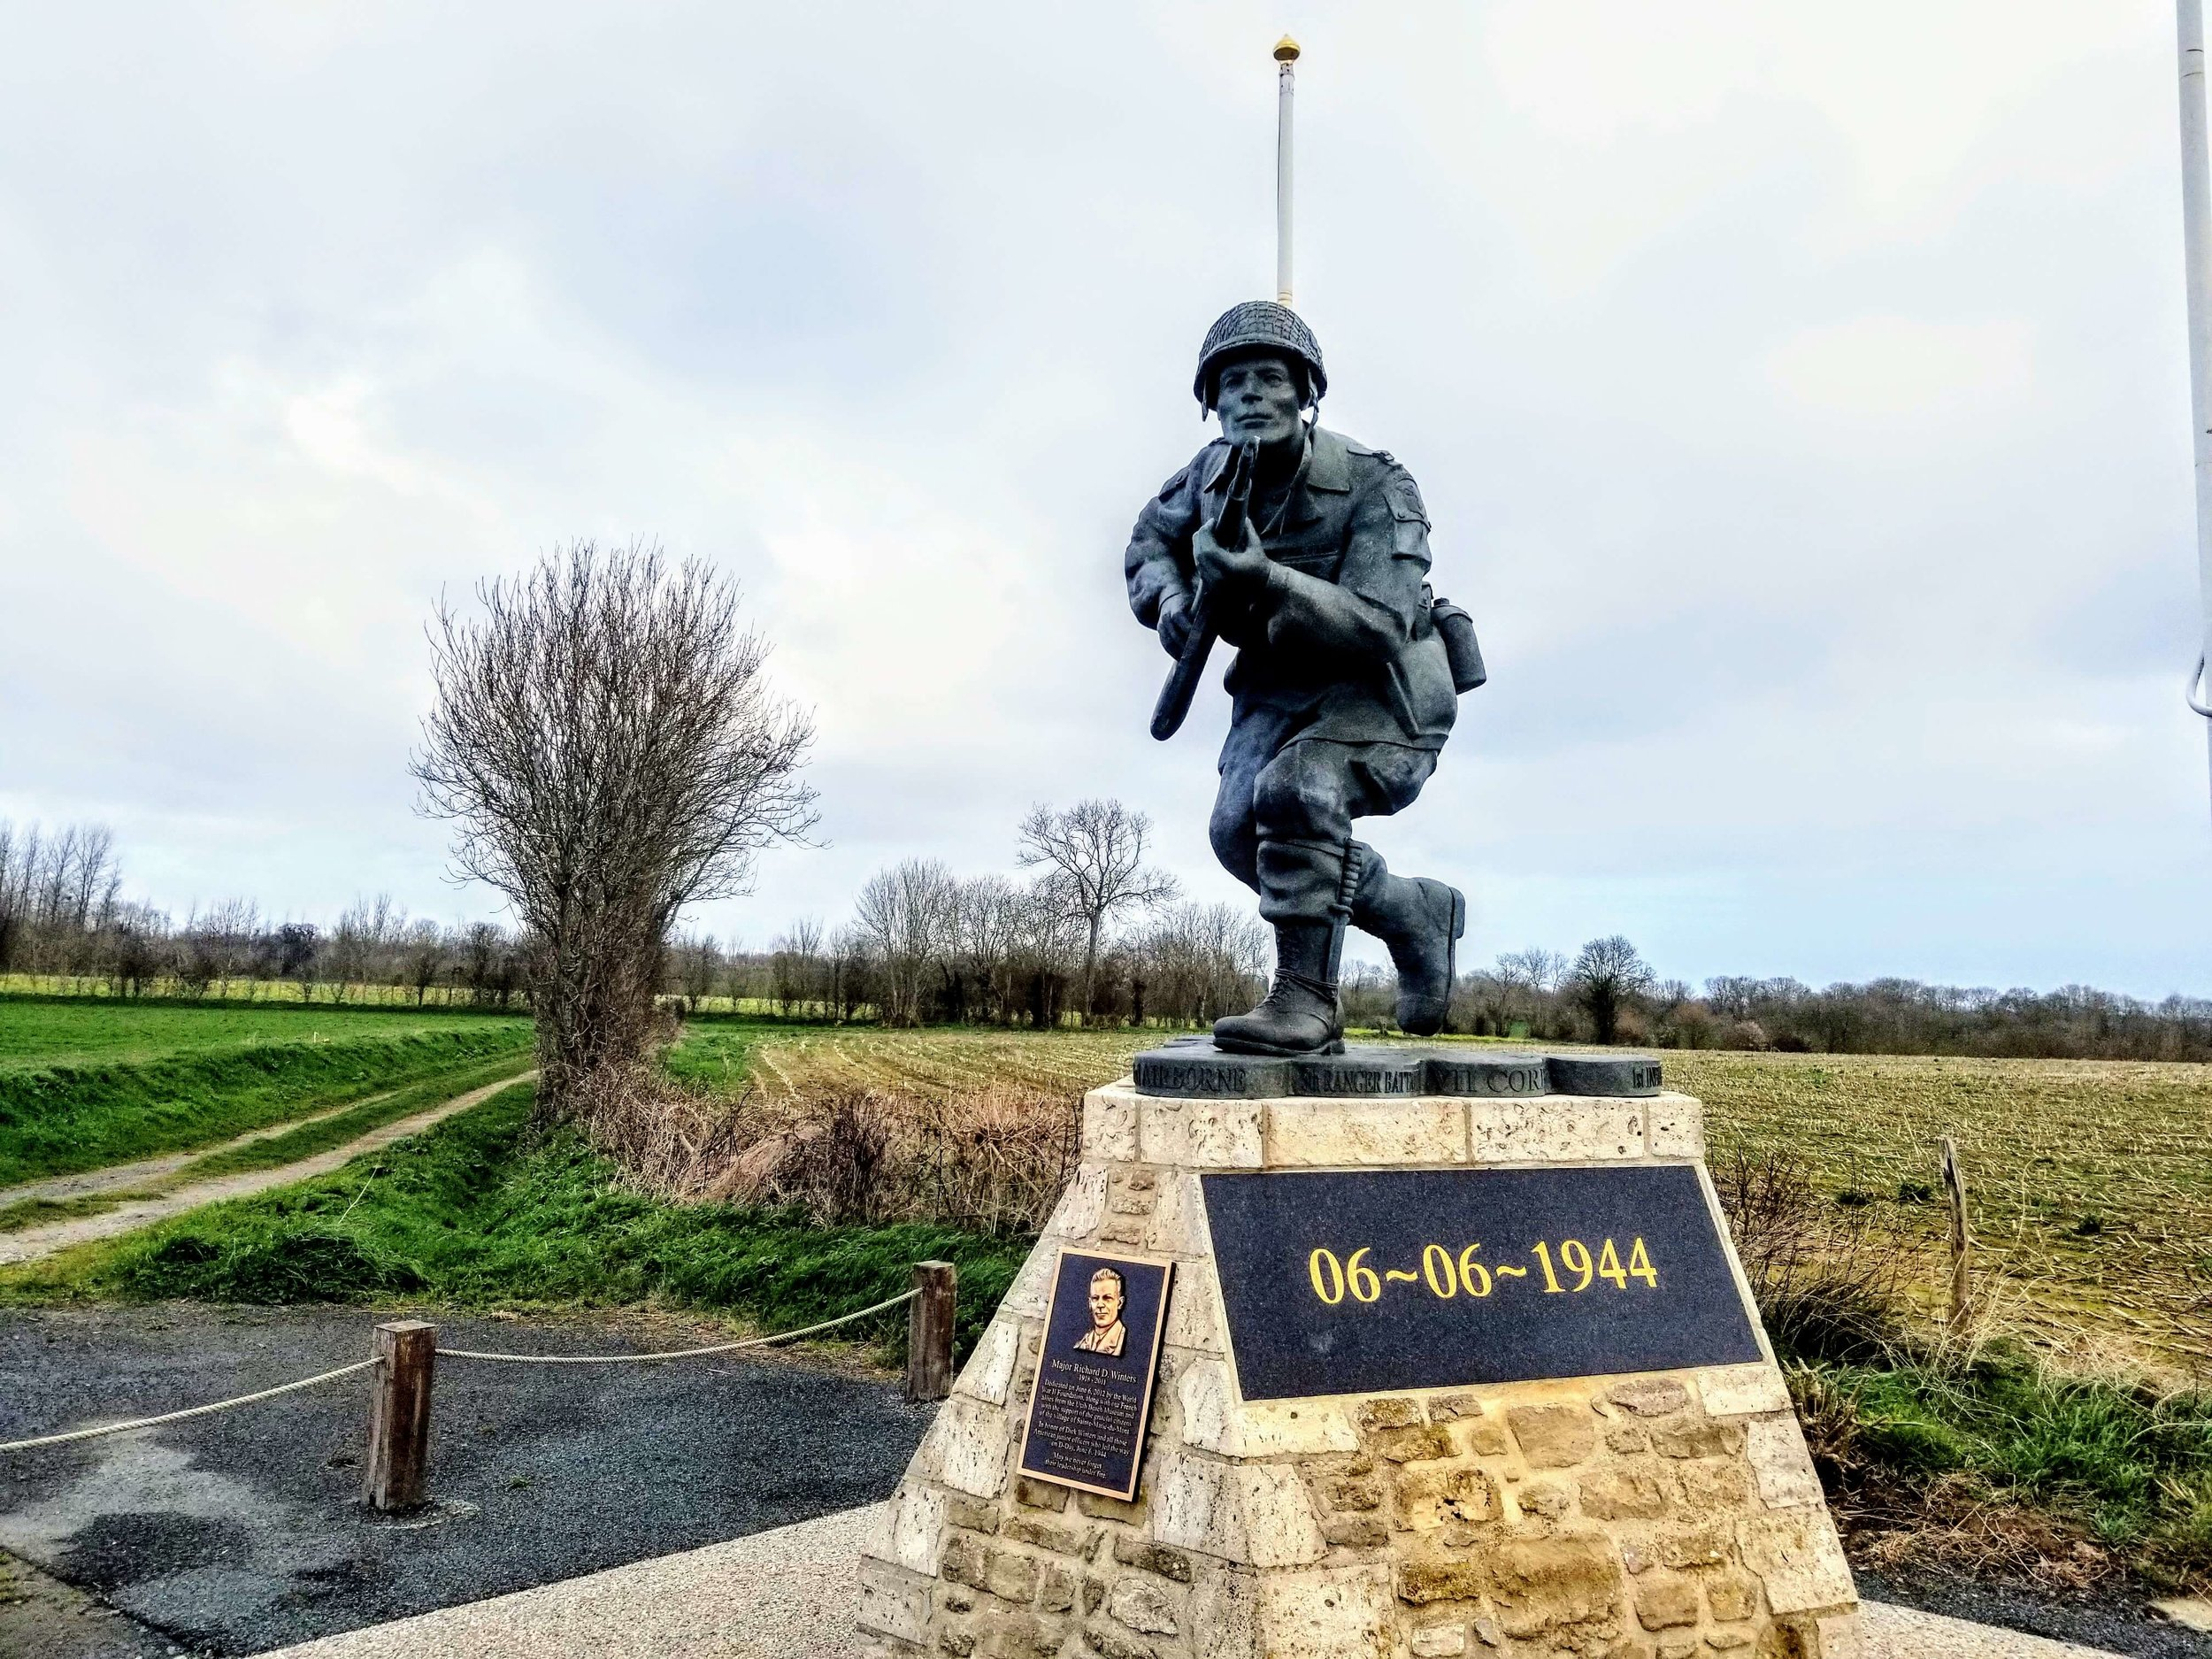 Statue of Dick Winters just outside Utah Beach